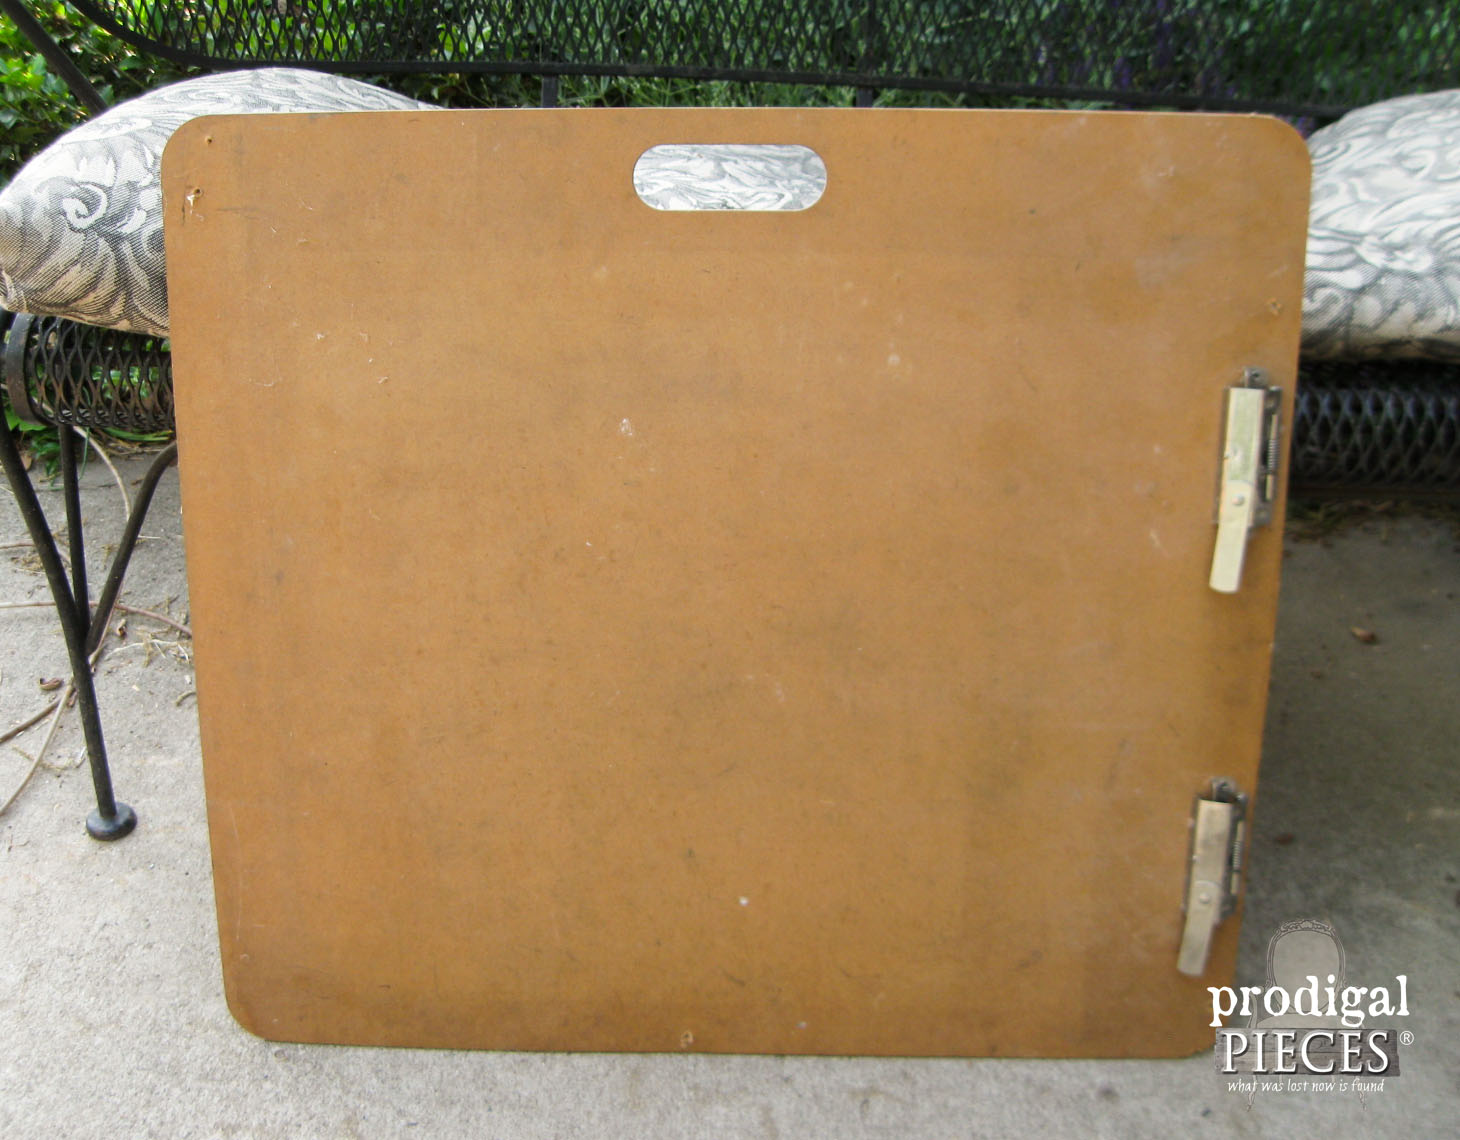 Artist's Clipboard Found Curbside Before Makeover | Prodigal Pieces | www.prodigalpieces.com